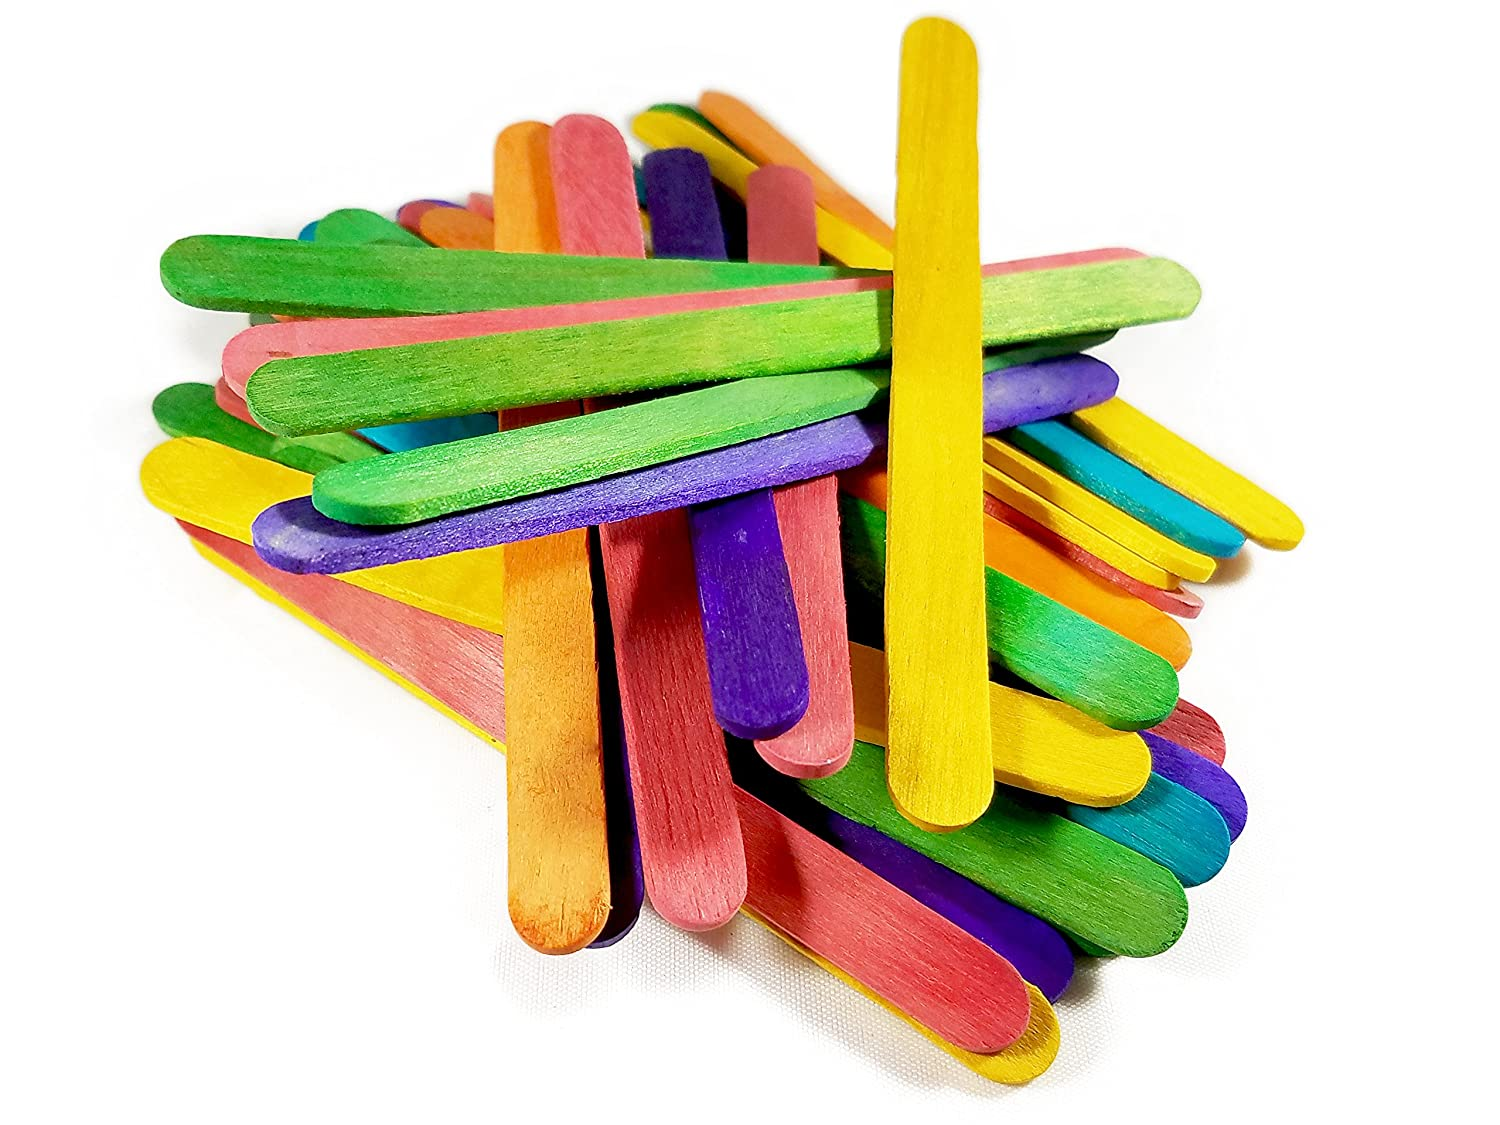 Better Crafts Wood Craft Colored Stick Perfect For Group Activities Crafts Projects And More. 500